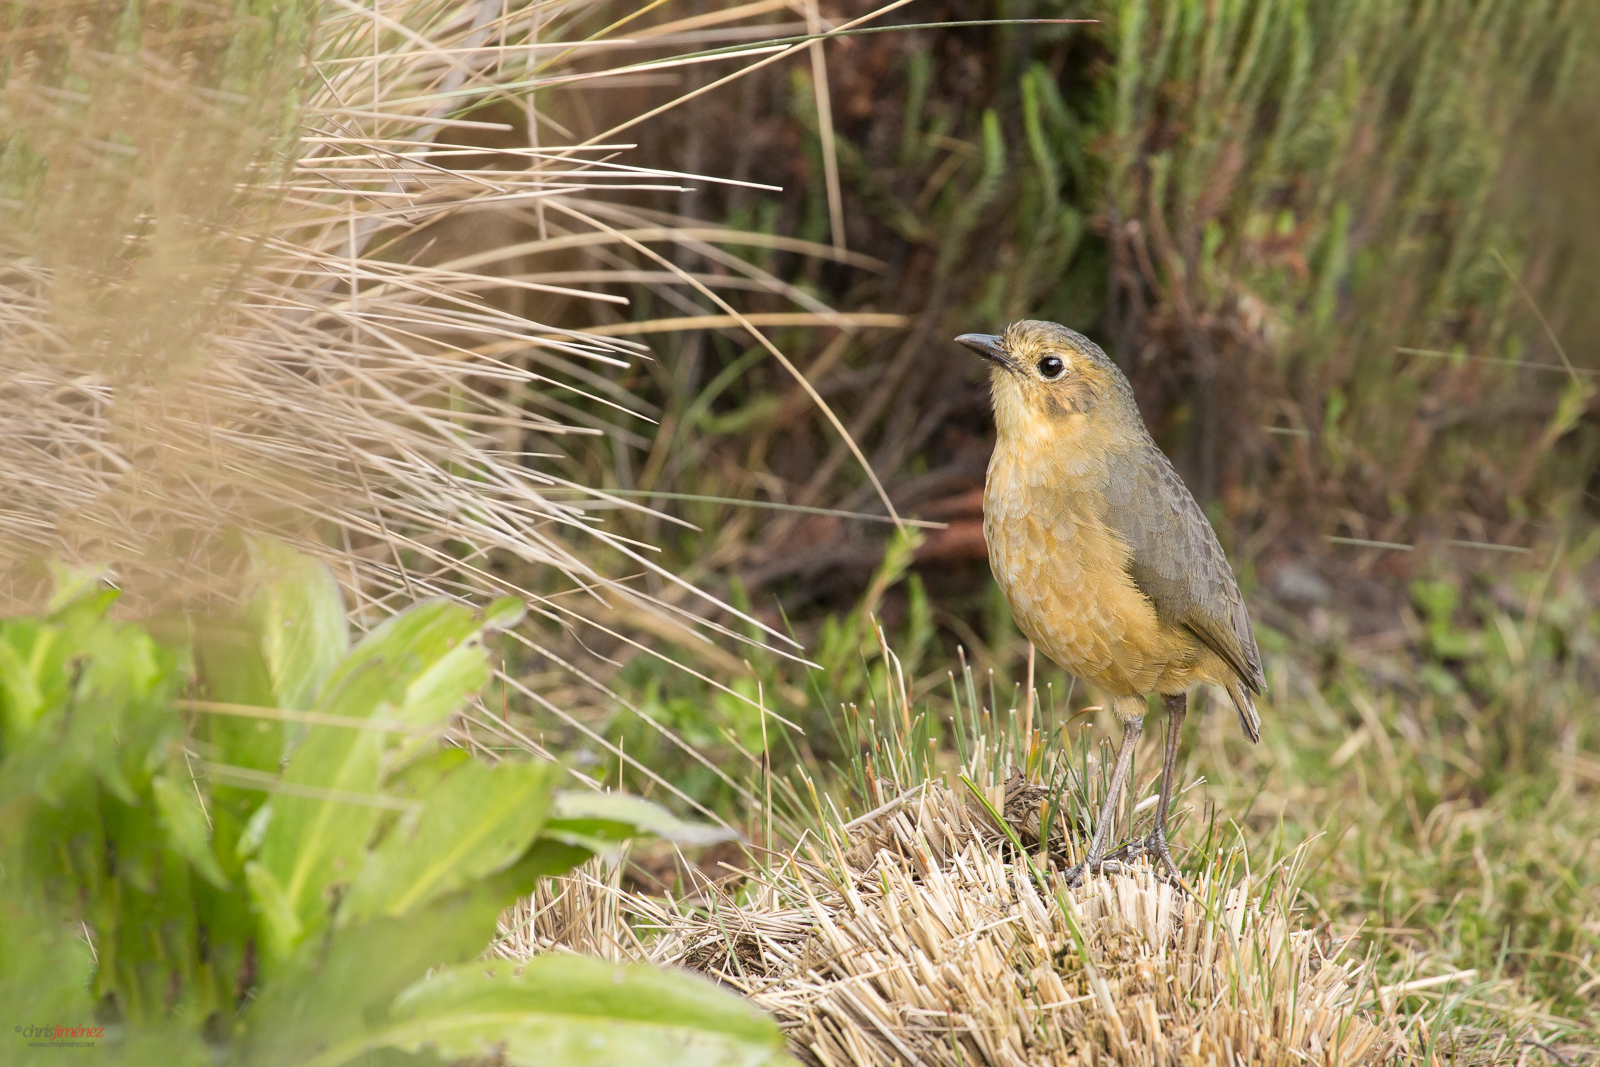 Tawny antpitta (Grallaria quitensis) calling from the ground